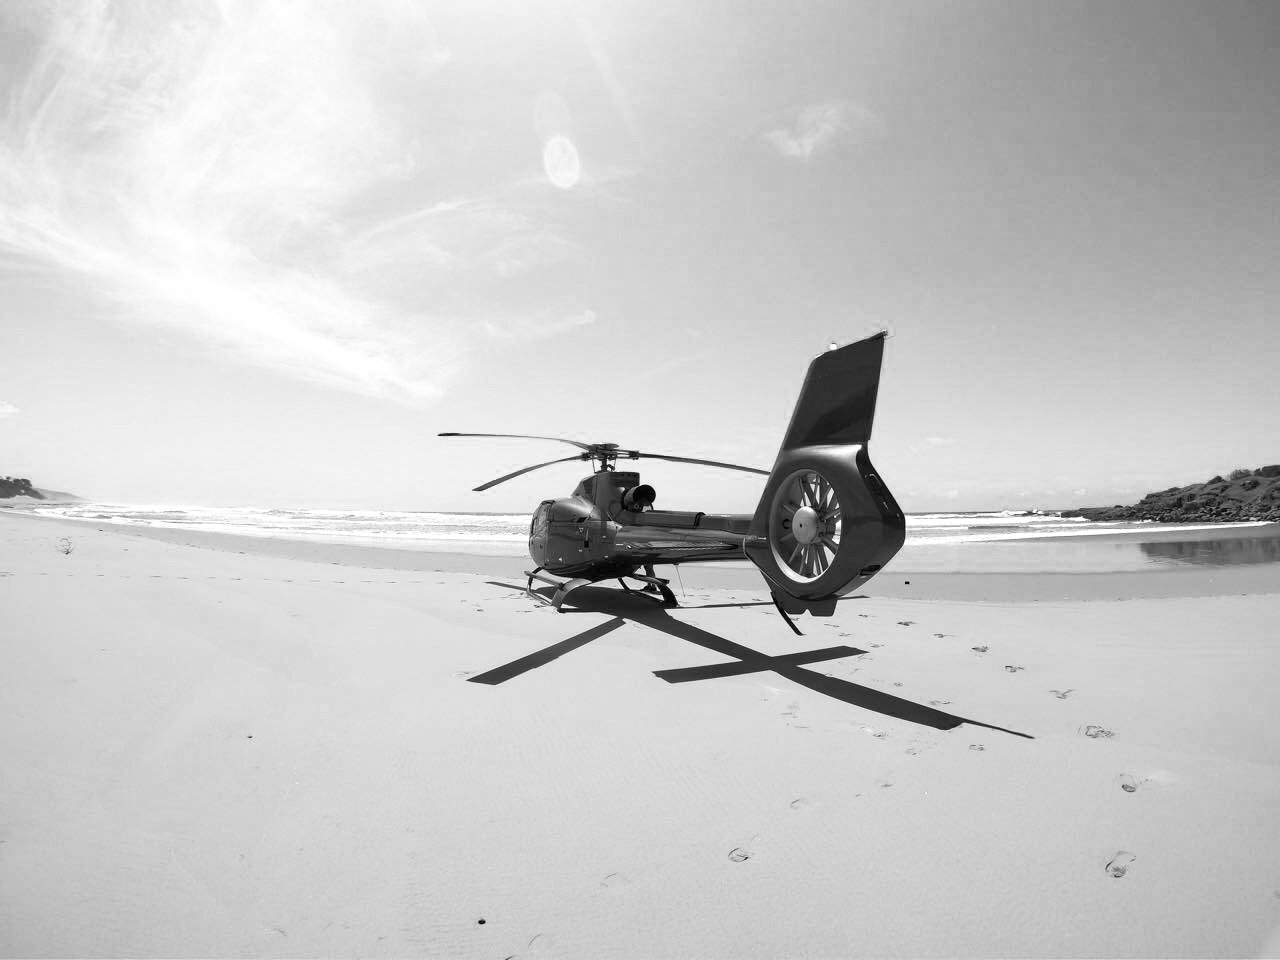 Personalized Helicopter Flight